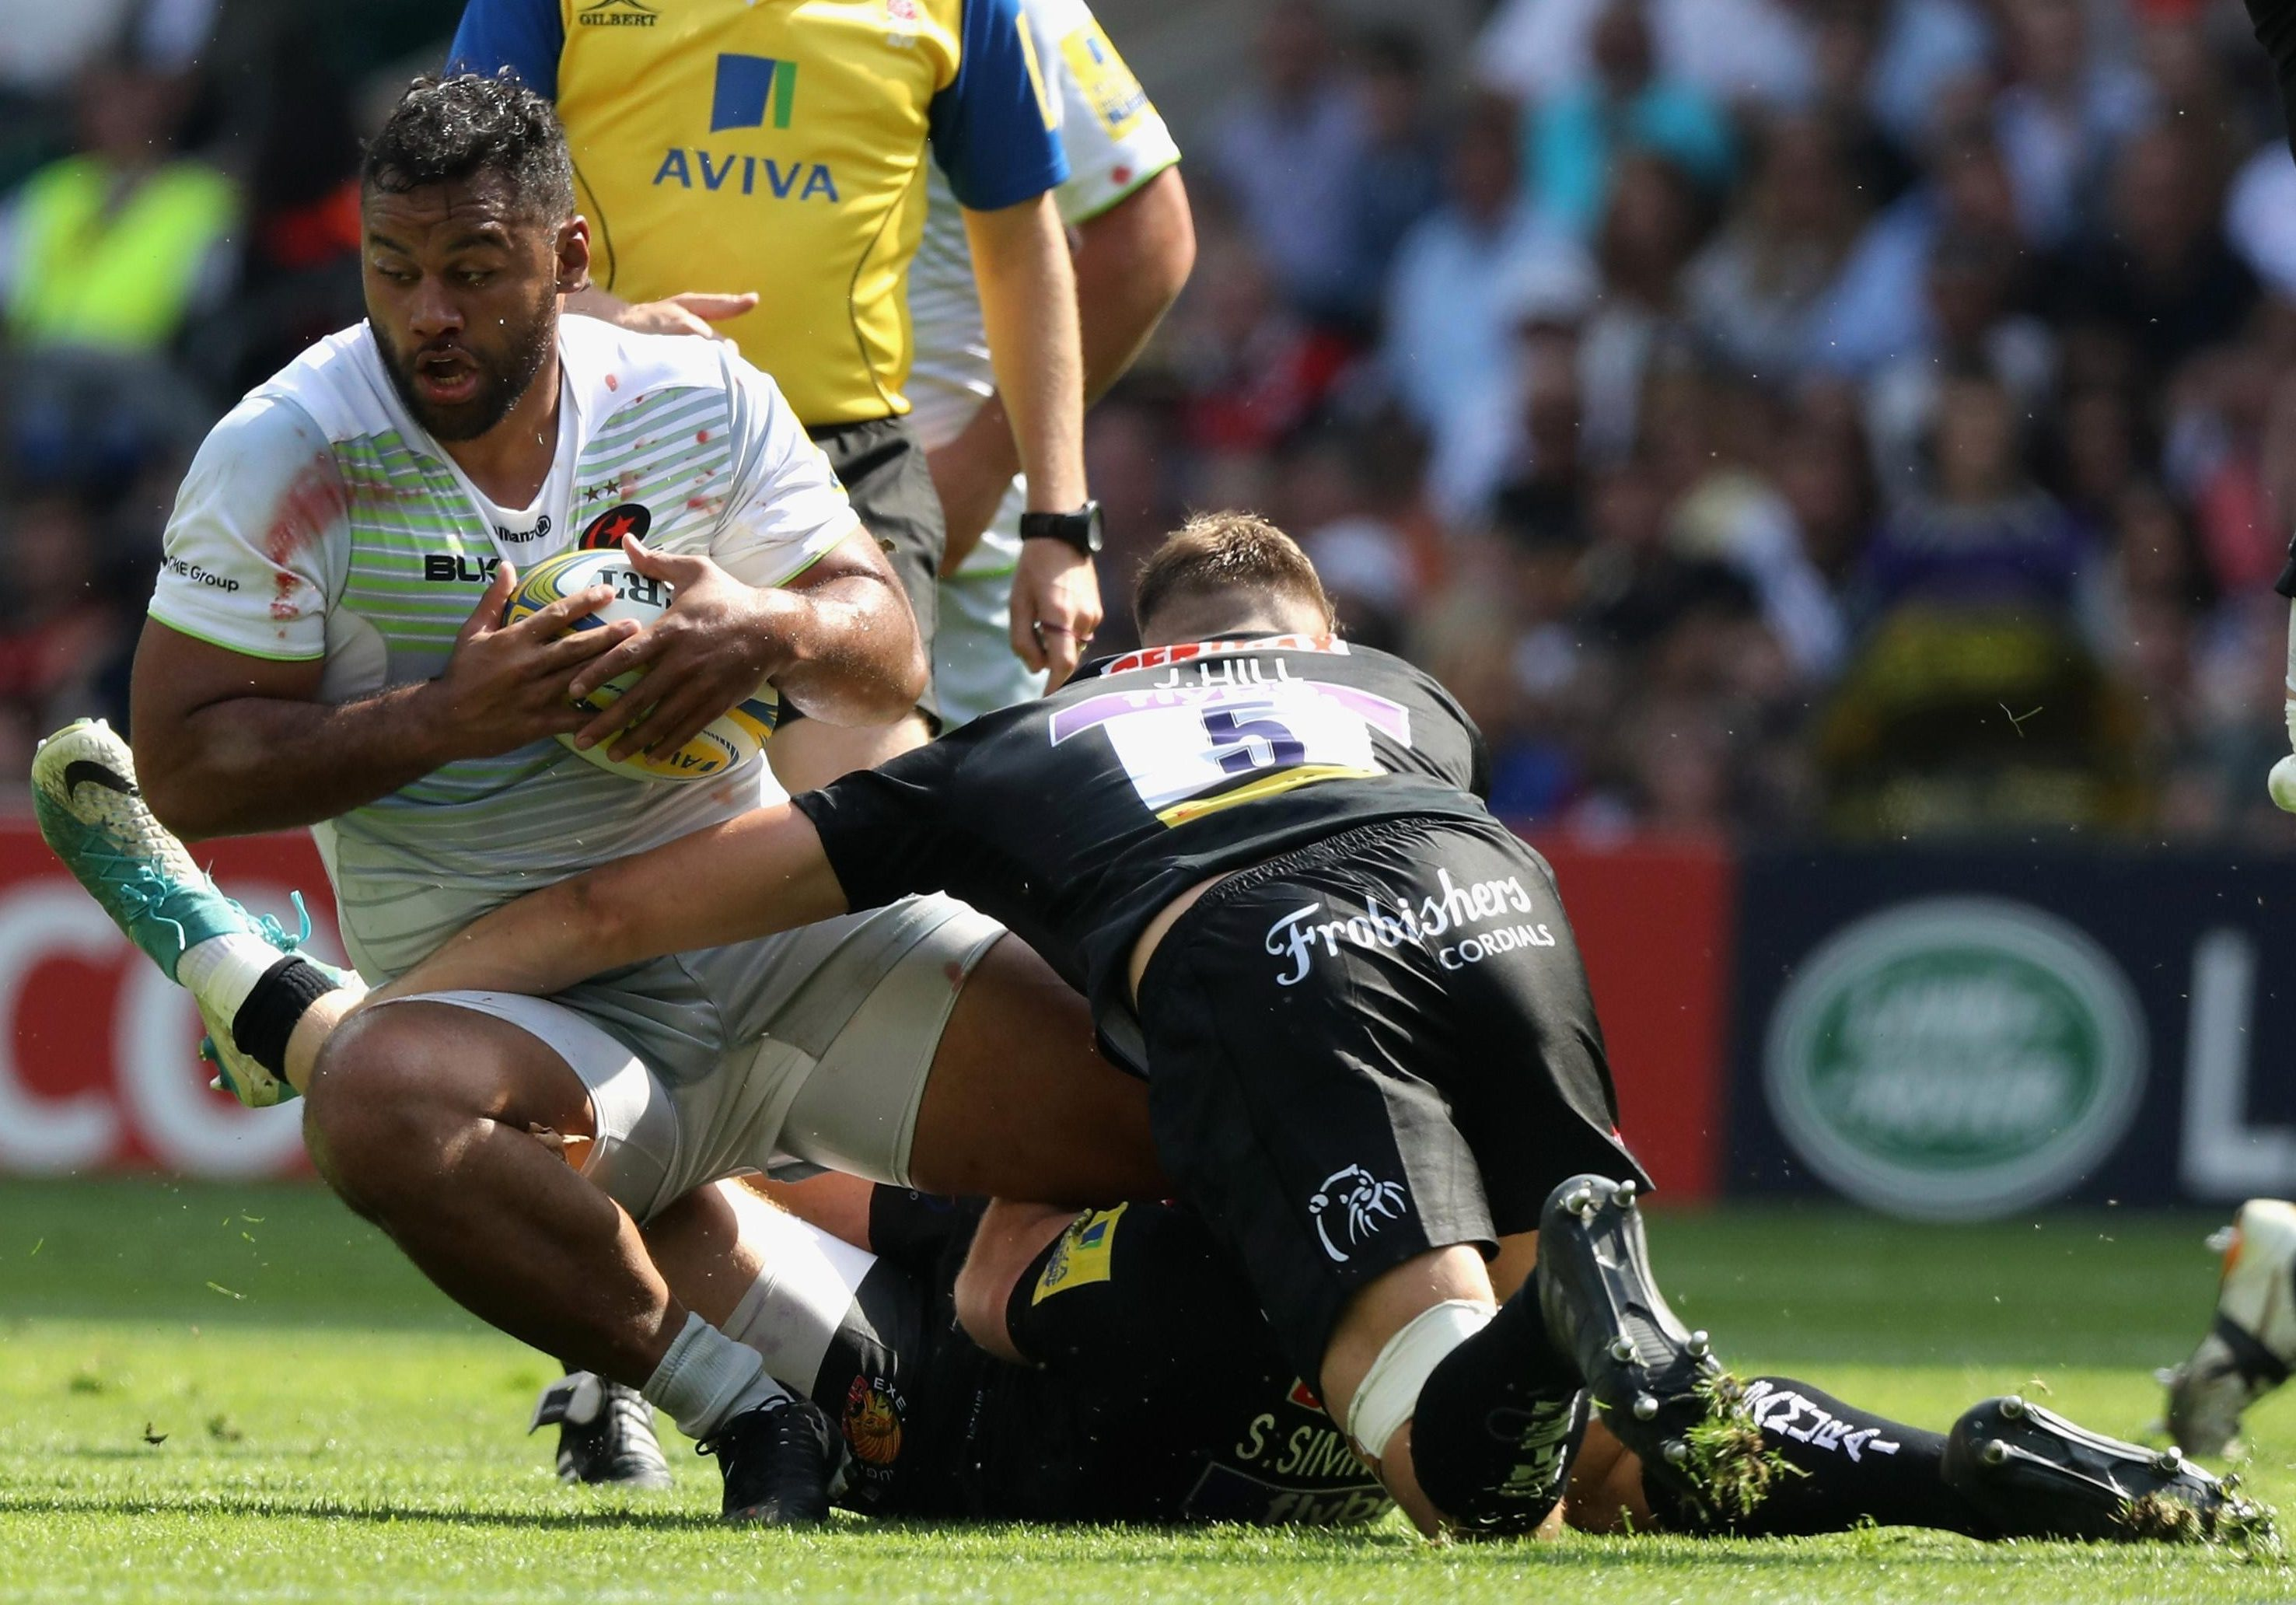 Rugby ace Vunipola hurt himself playing Aussie Rules